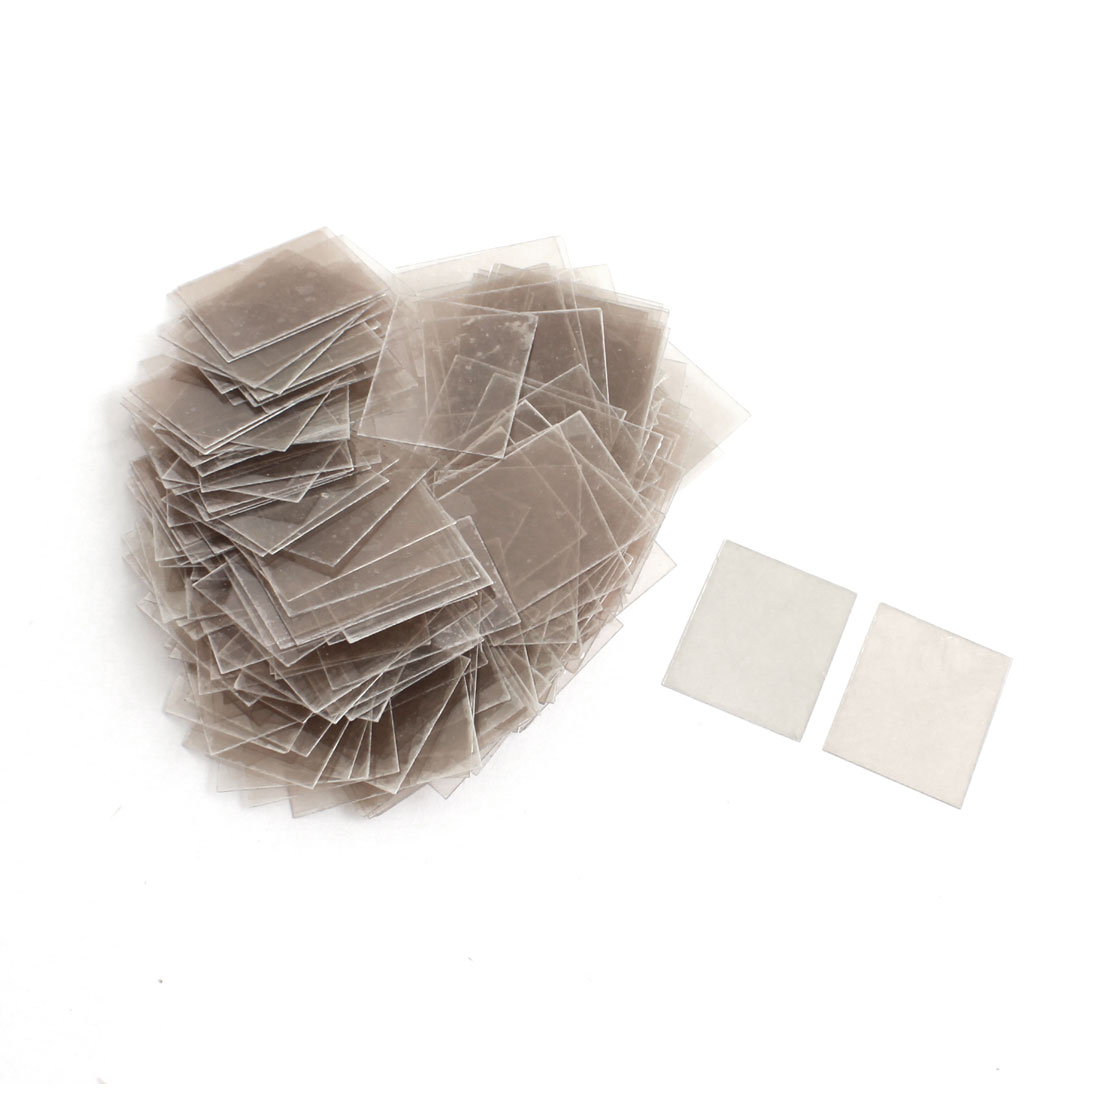 200Pcs 20mm x 25cm x 0.12mm Repairing Part Mica Insulator Sheets